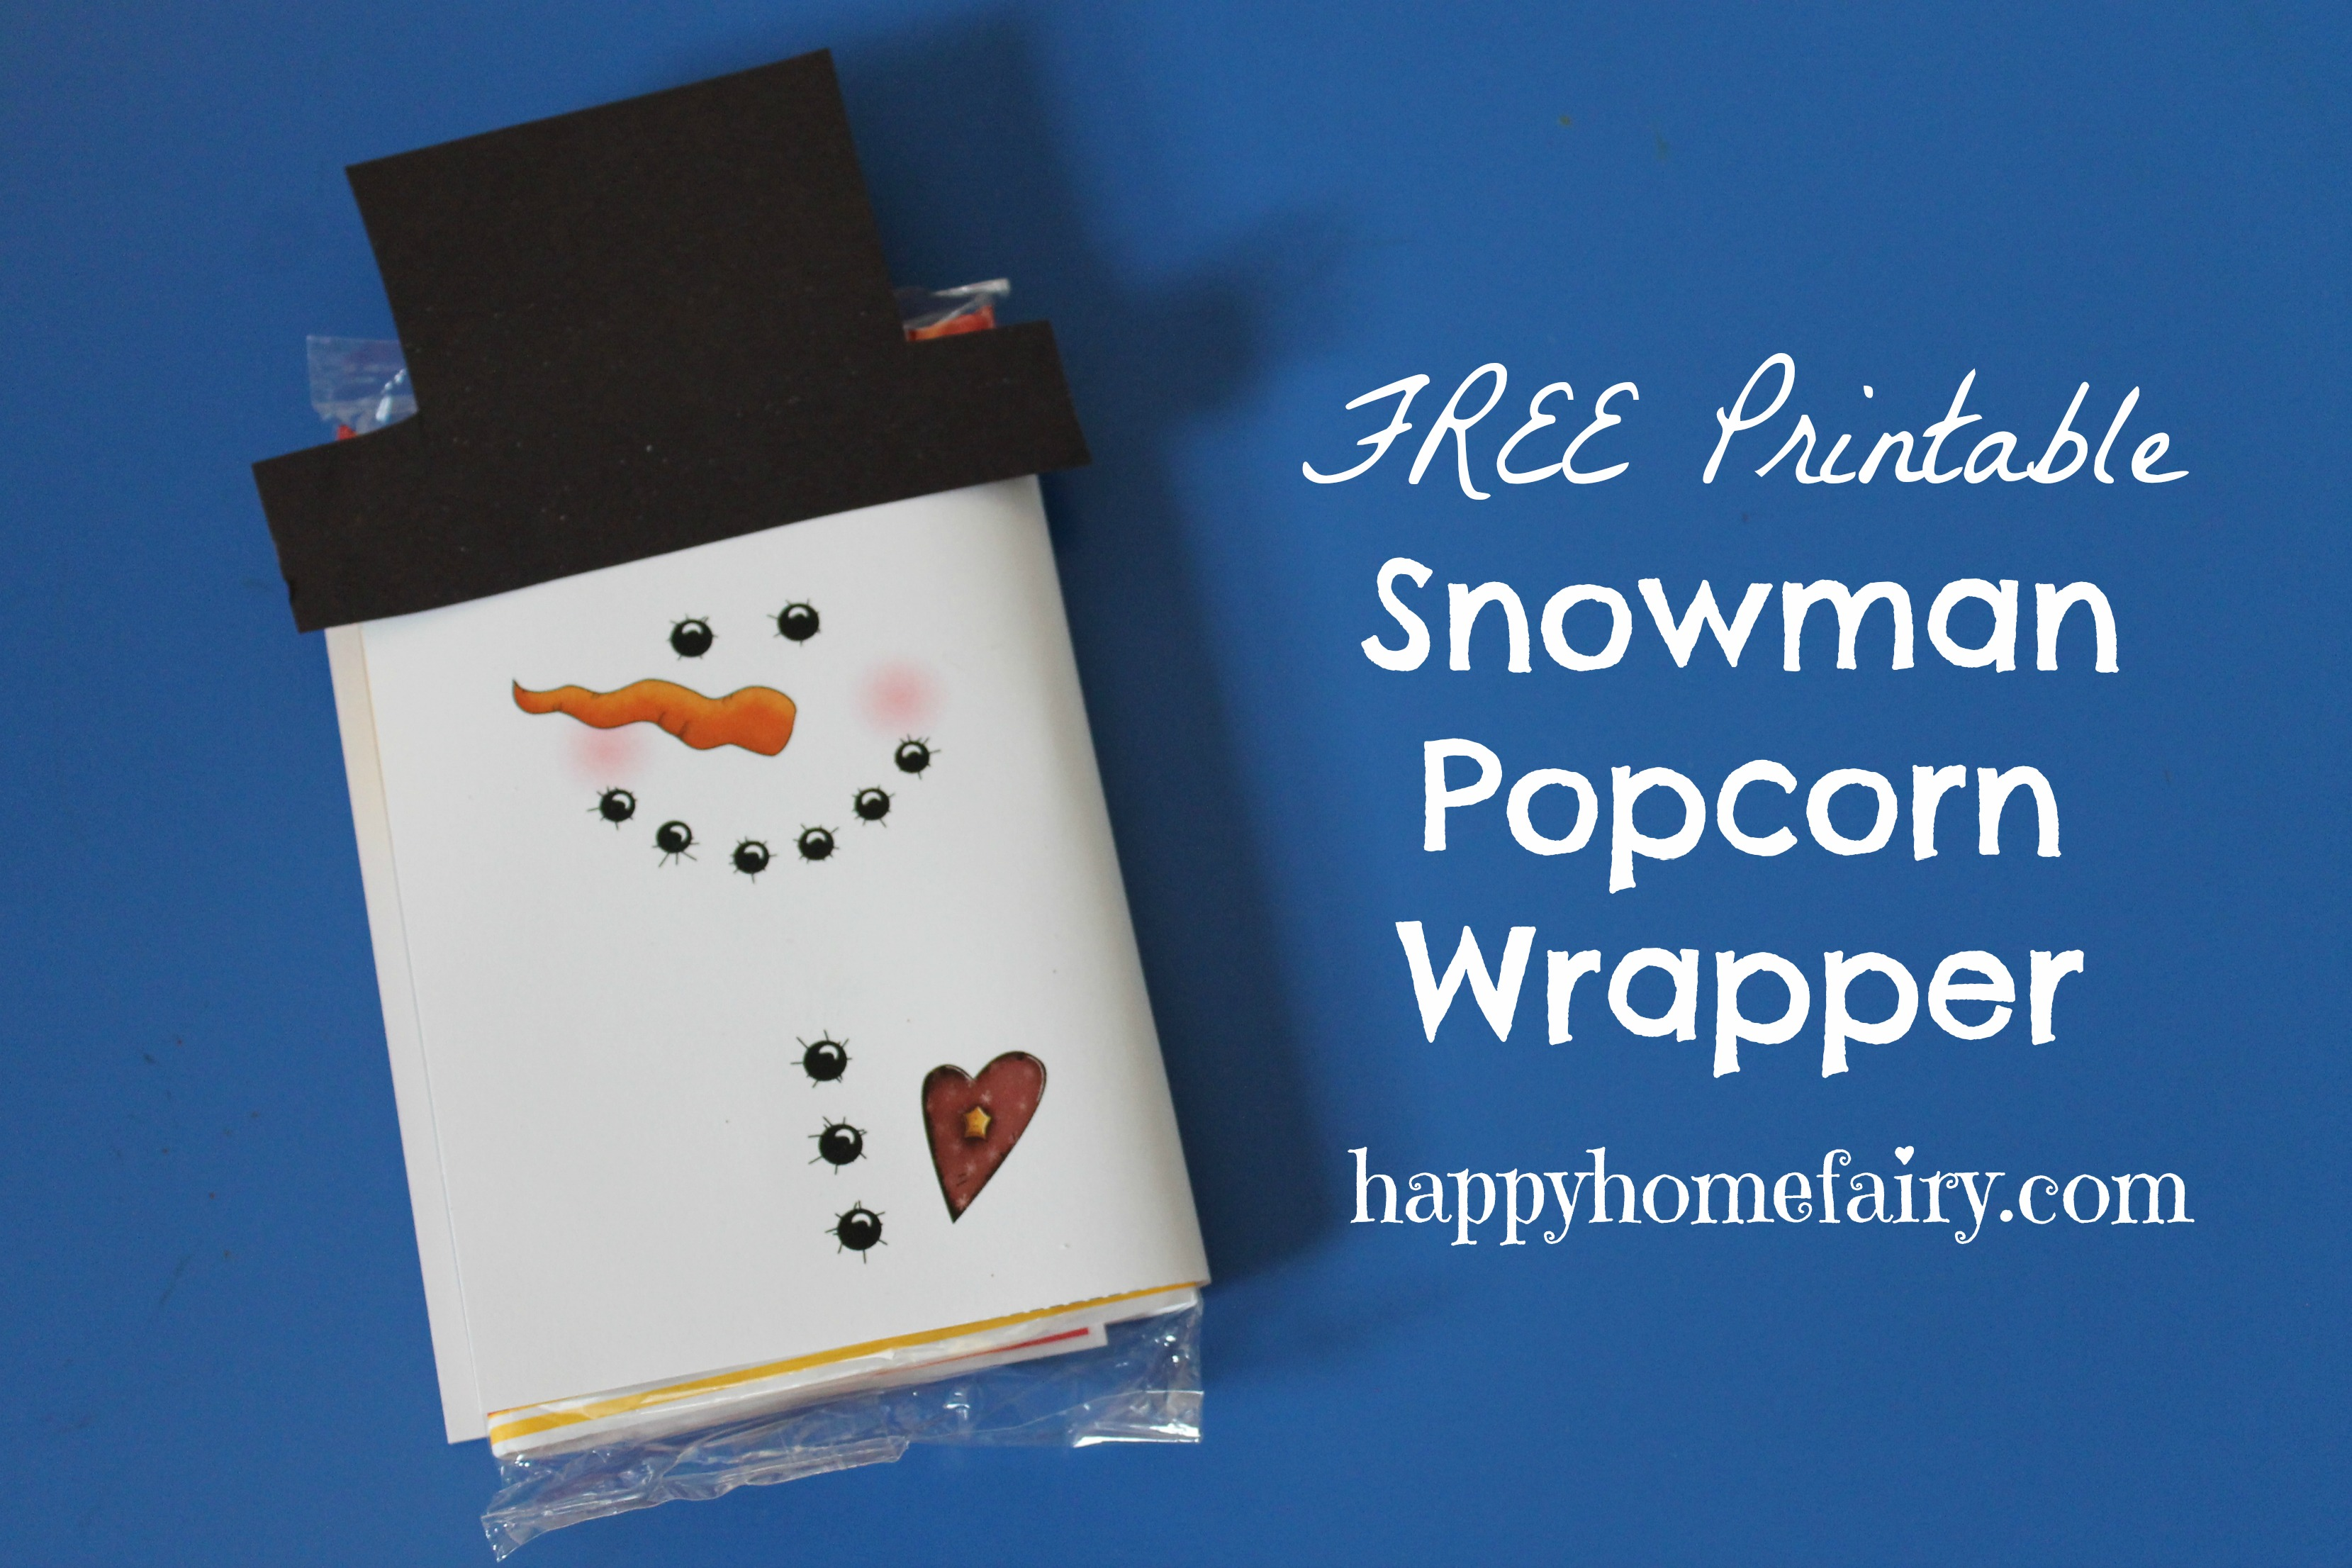 image regarding Snowman Candy Bar Wrapper Free Printable known as Snowman Popcorn Wrapper - Totally free Printable! - Pleased Household Fairy